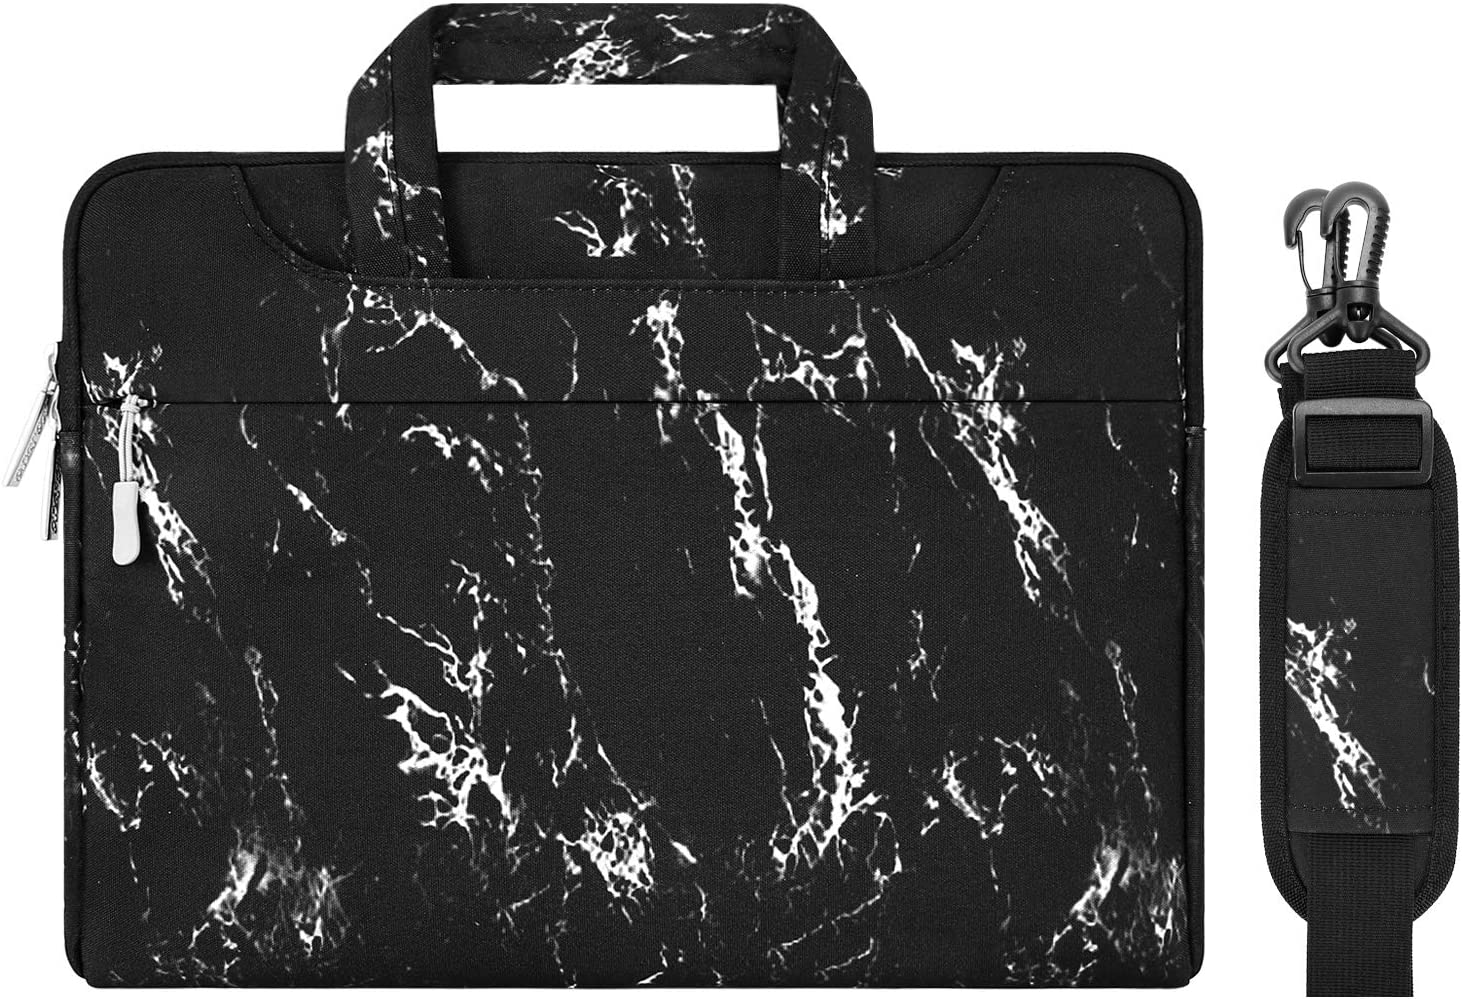 MOSISO Laptop Shoulder Bag Compatible with MacBook Pro 16 inch A2141, 15 15.4 15.6 inch Dell Lenovo HP Asus Acer Samsung Sony Chromebook, Marble Pattern Carrying Briefcase Sleeve Case, Black